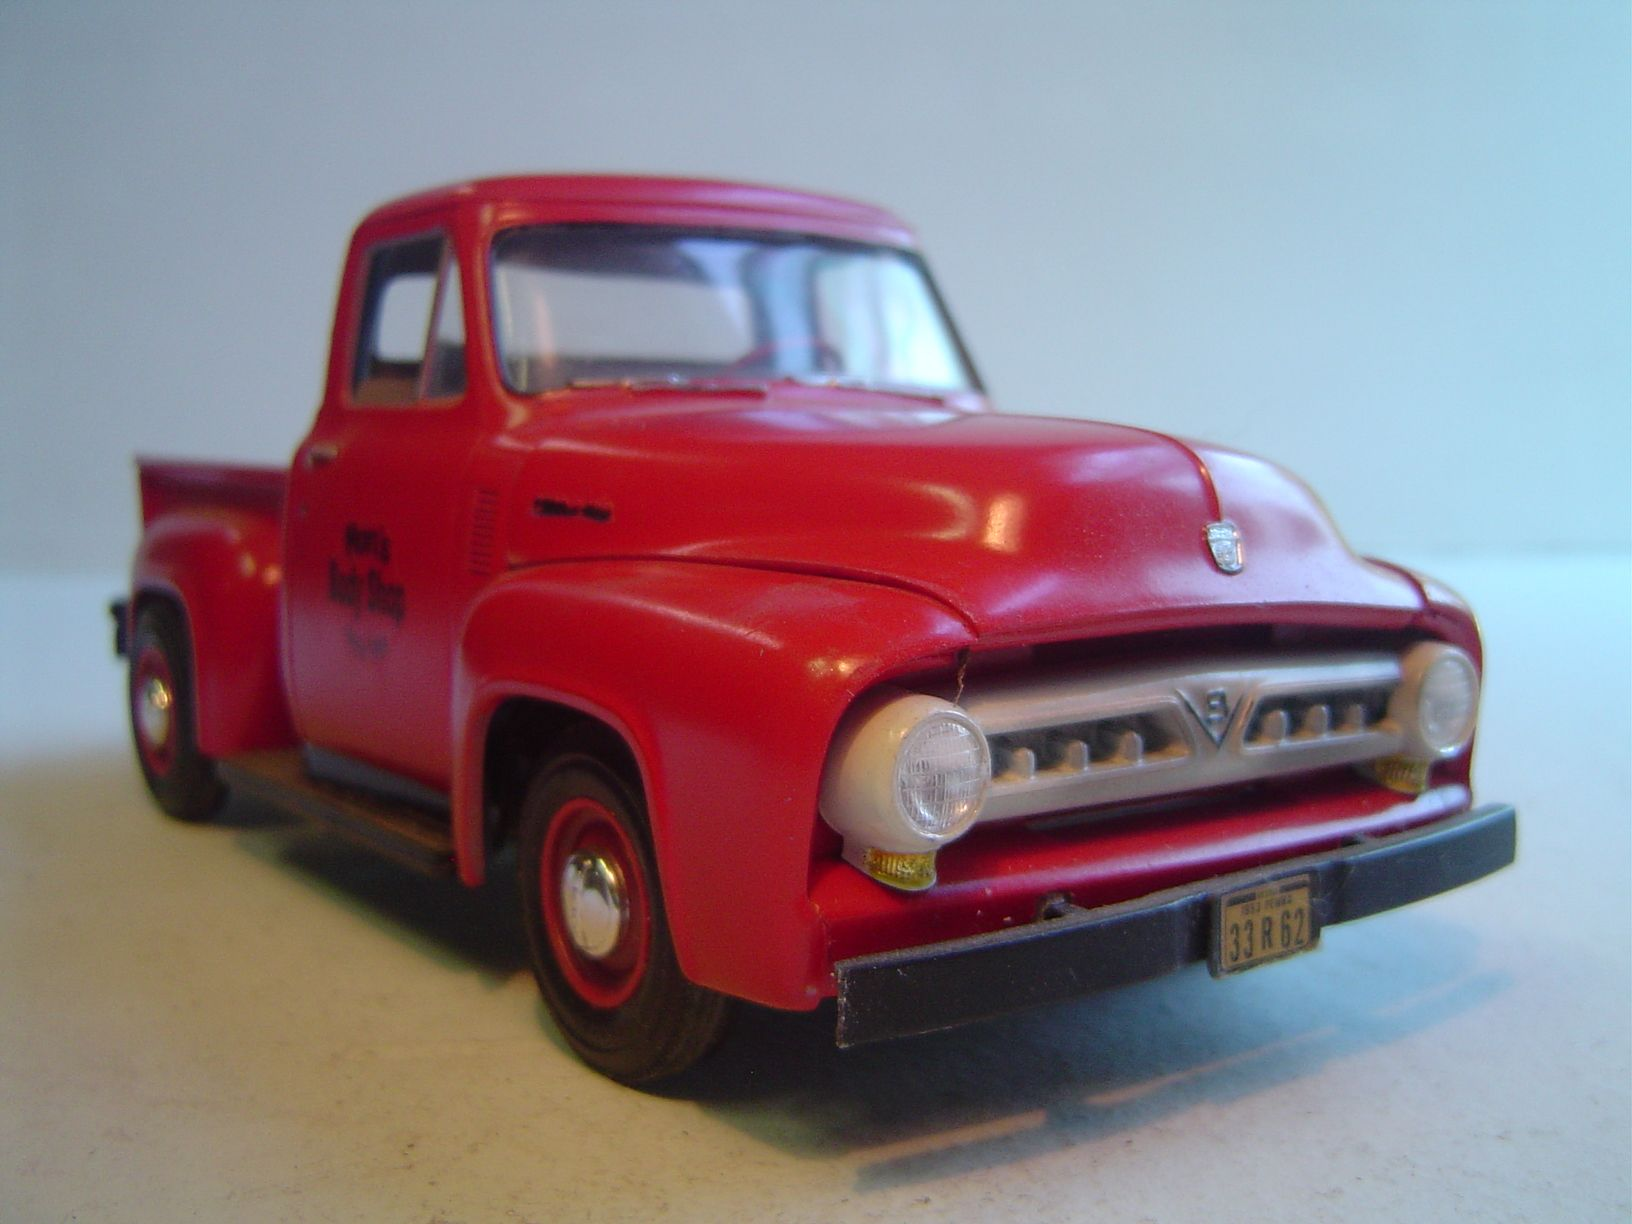 39 53 ford pickup my model cars pinterest. Black Bedroom Furniture Sets. Home Design Ideas